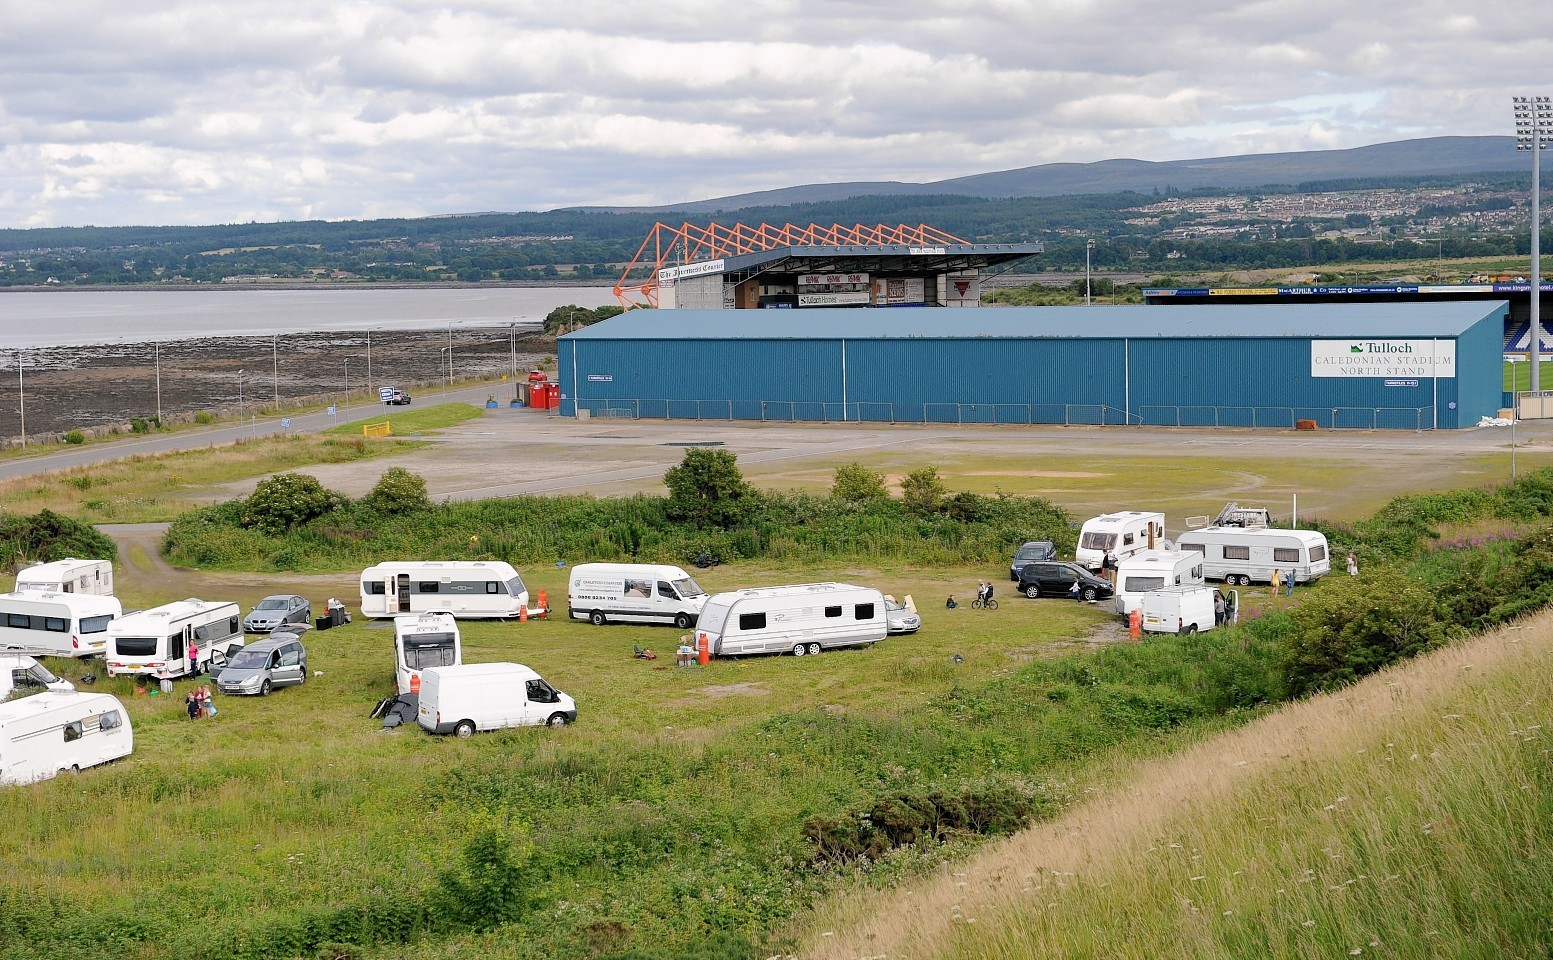 Travellers have made camp in the car park of the Caley Stadium in Inverness.